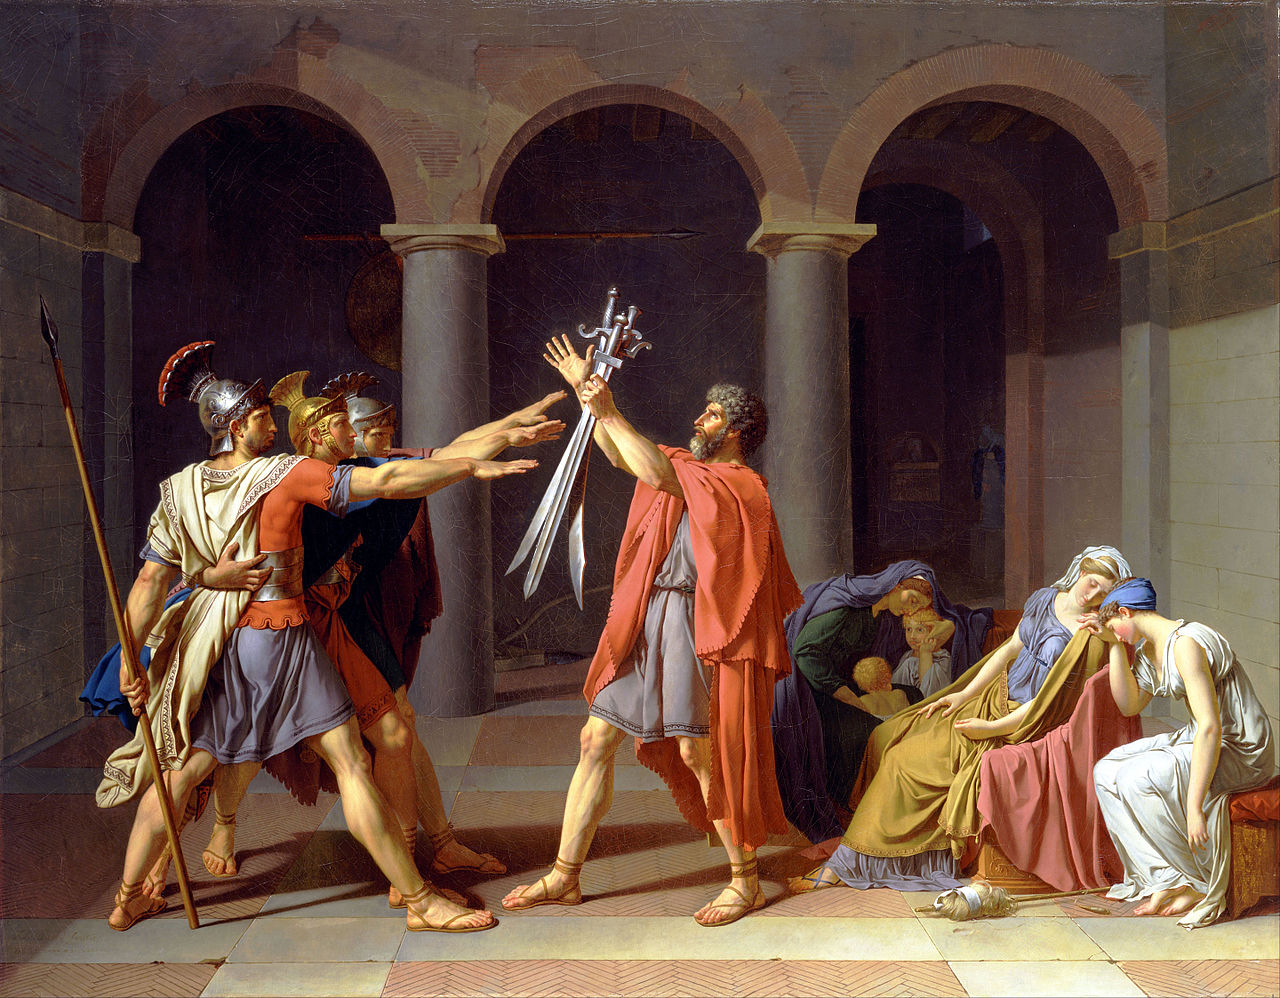 Oath of the Horatii, by Jacques-Louis David, 1784. David was an extremely influential figure in the Neoclassical movement